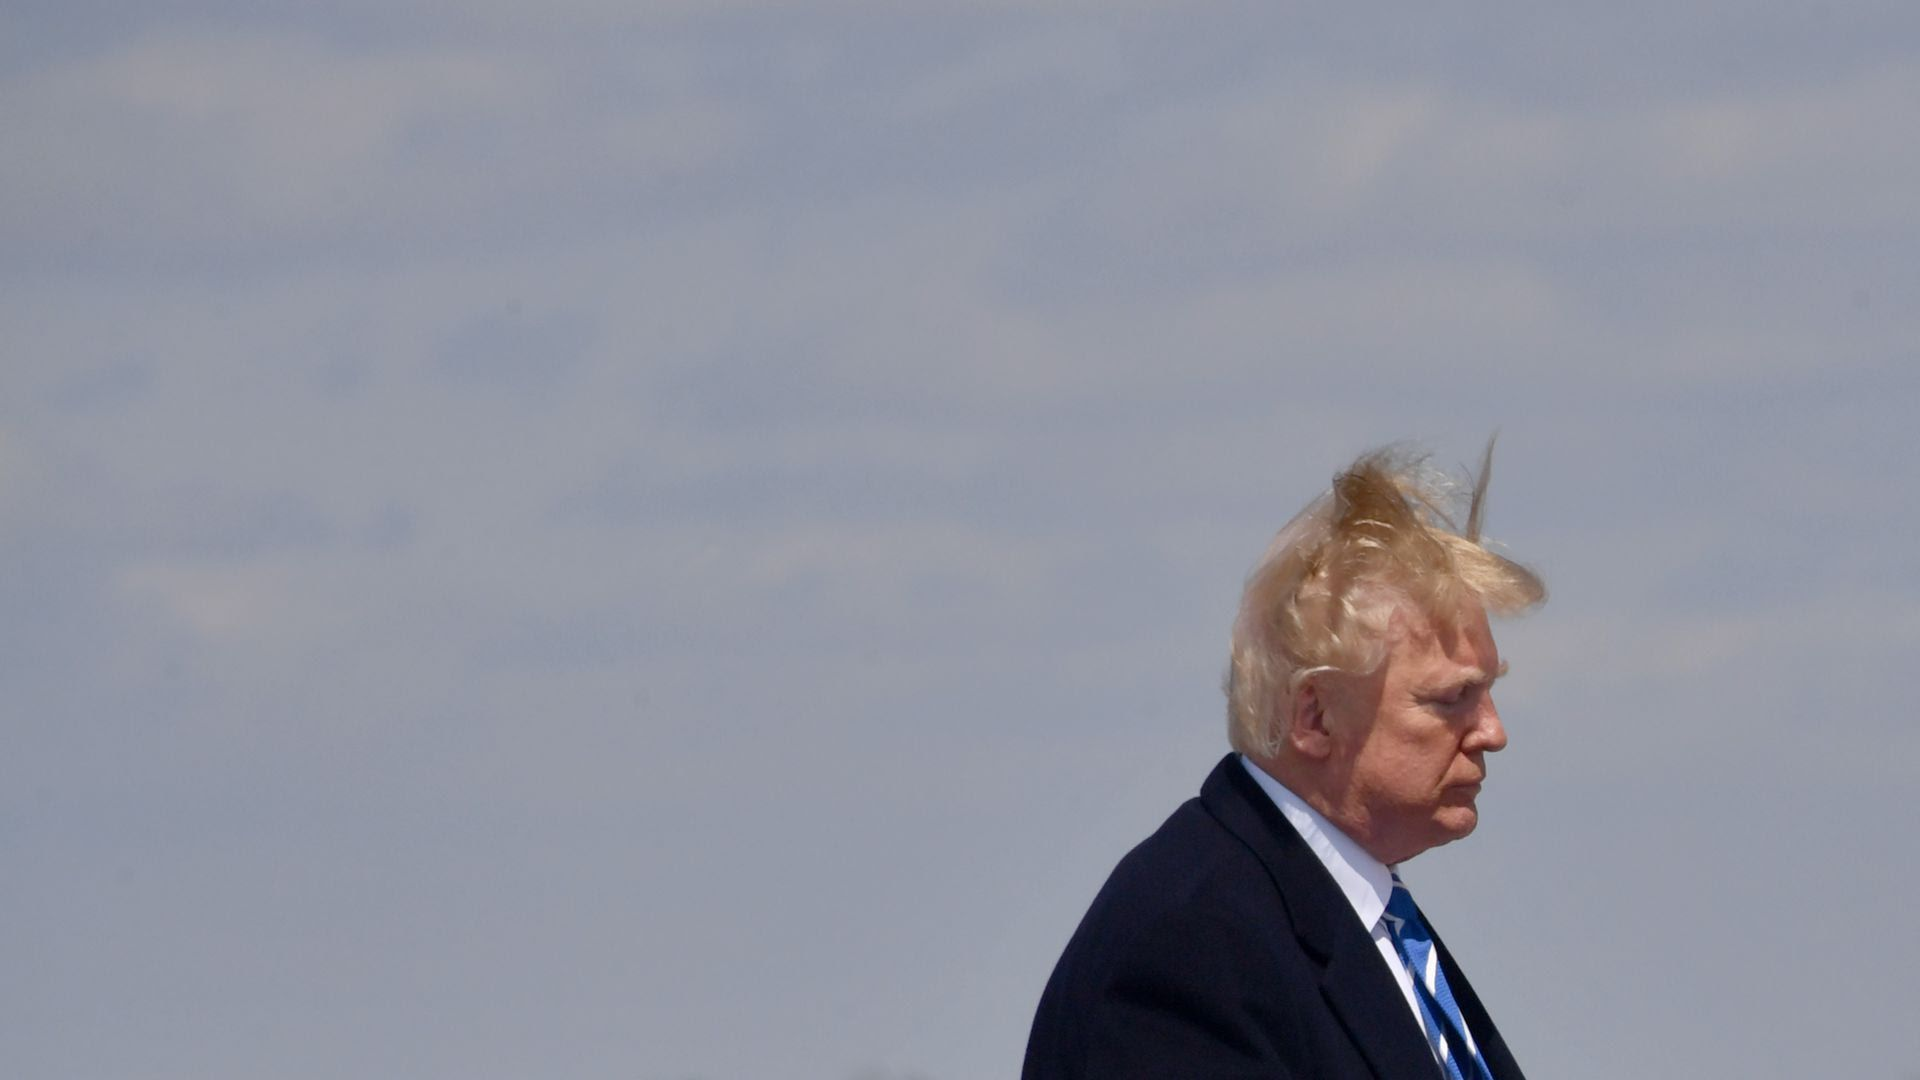 President Trump's hair blows in the wind